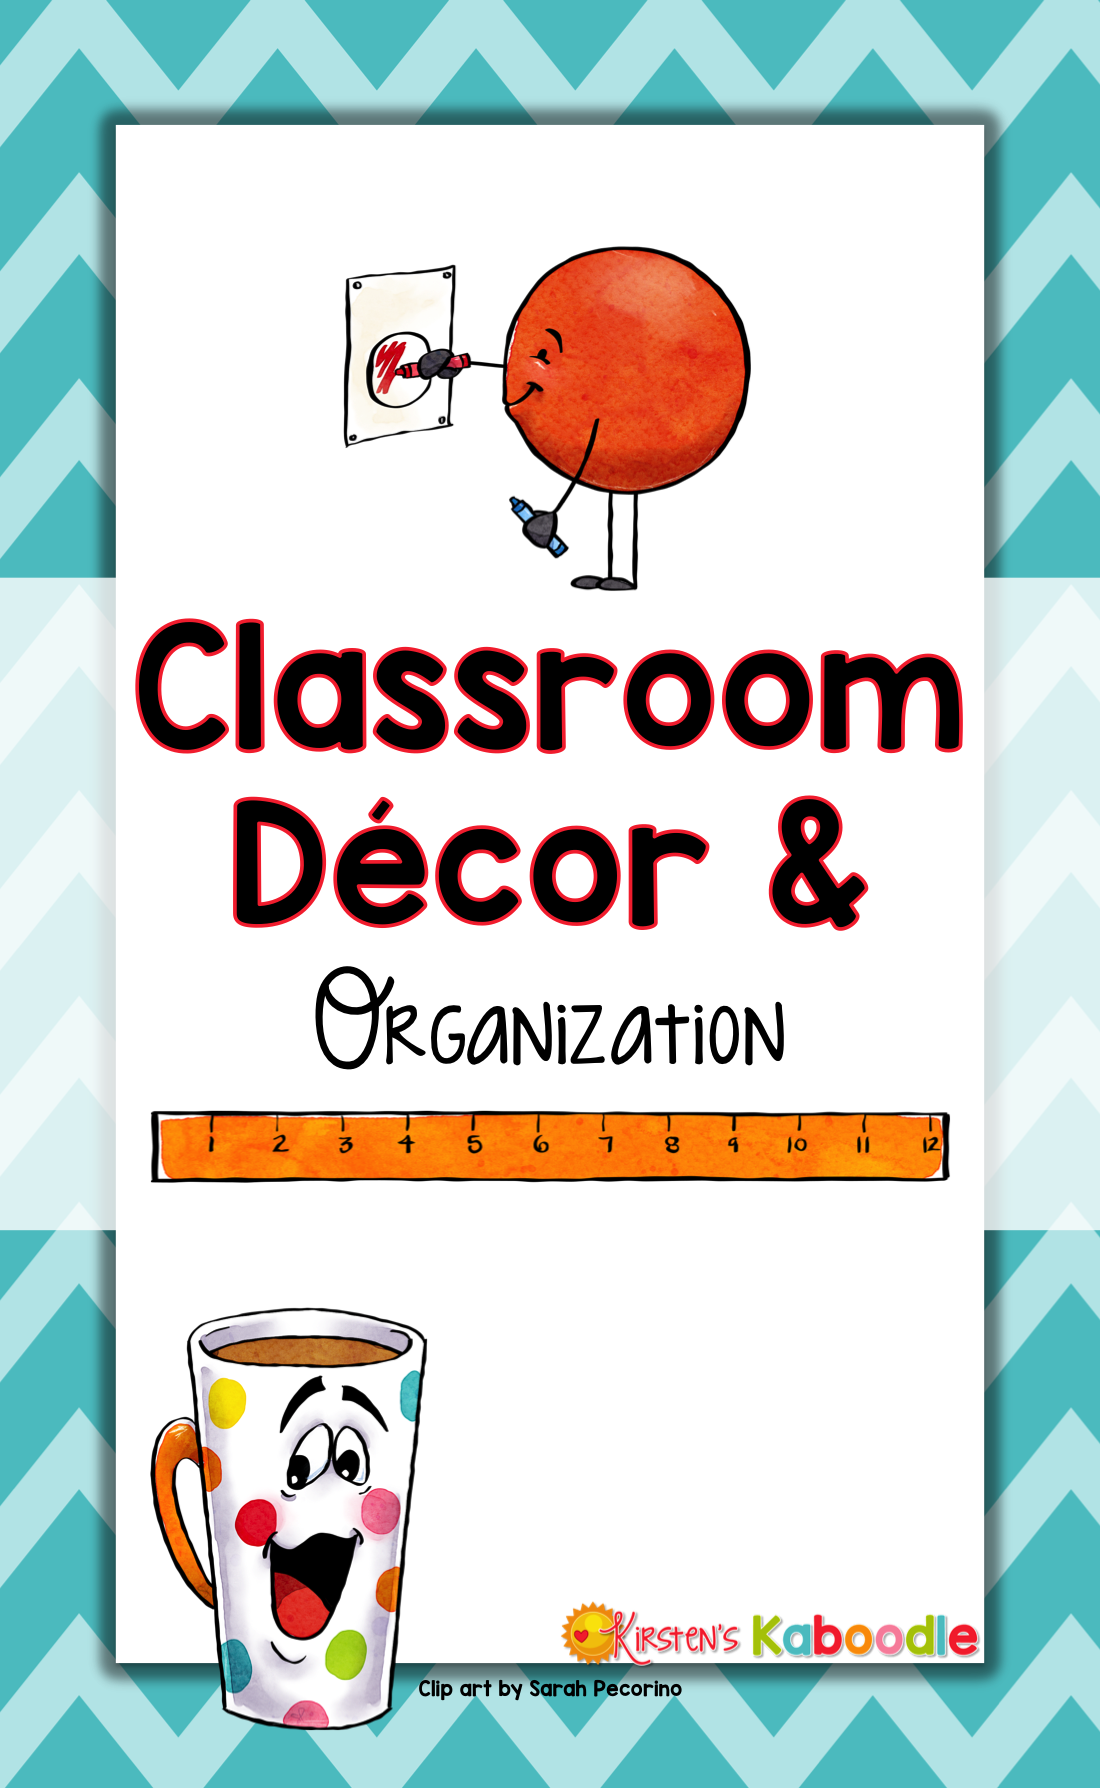 Who doesn't love to check out amazing classroom decor and organization?  This board is full of classroom photos, organization tips and trick, and bulletin board ideas for classroom teachers!  I love bright colors and cleanliness... that's what you'll find here!